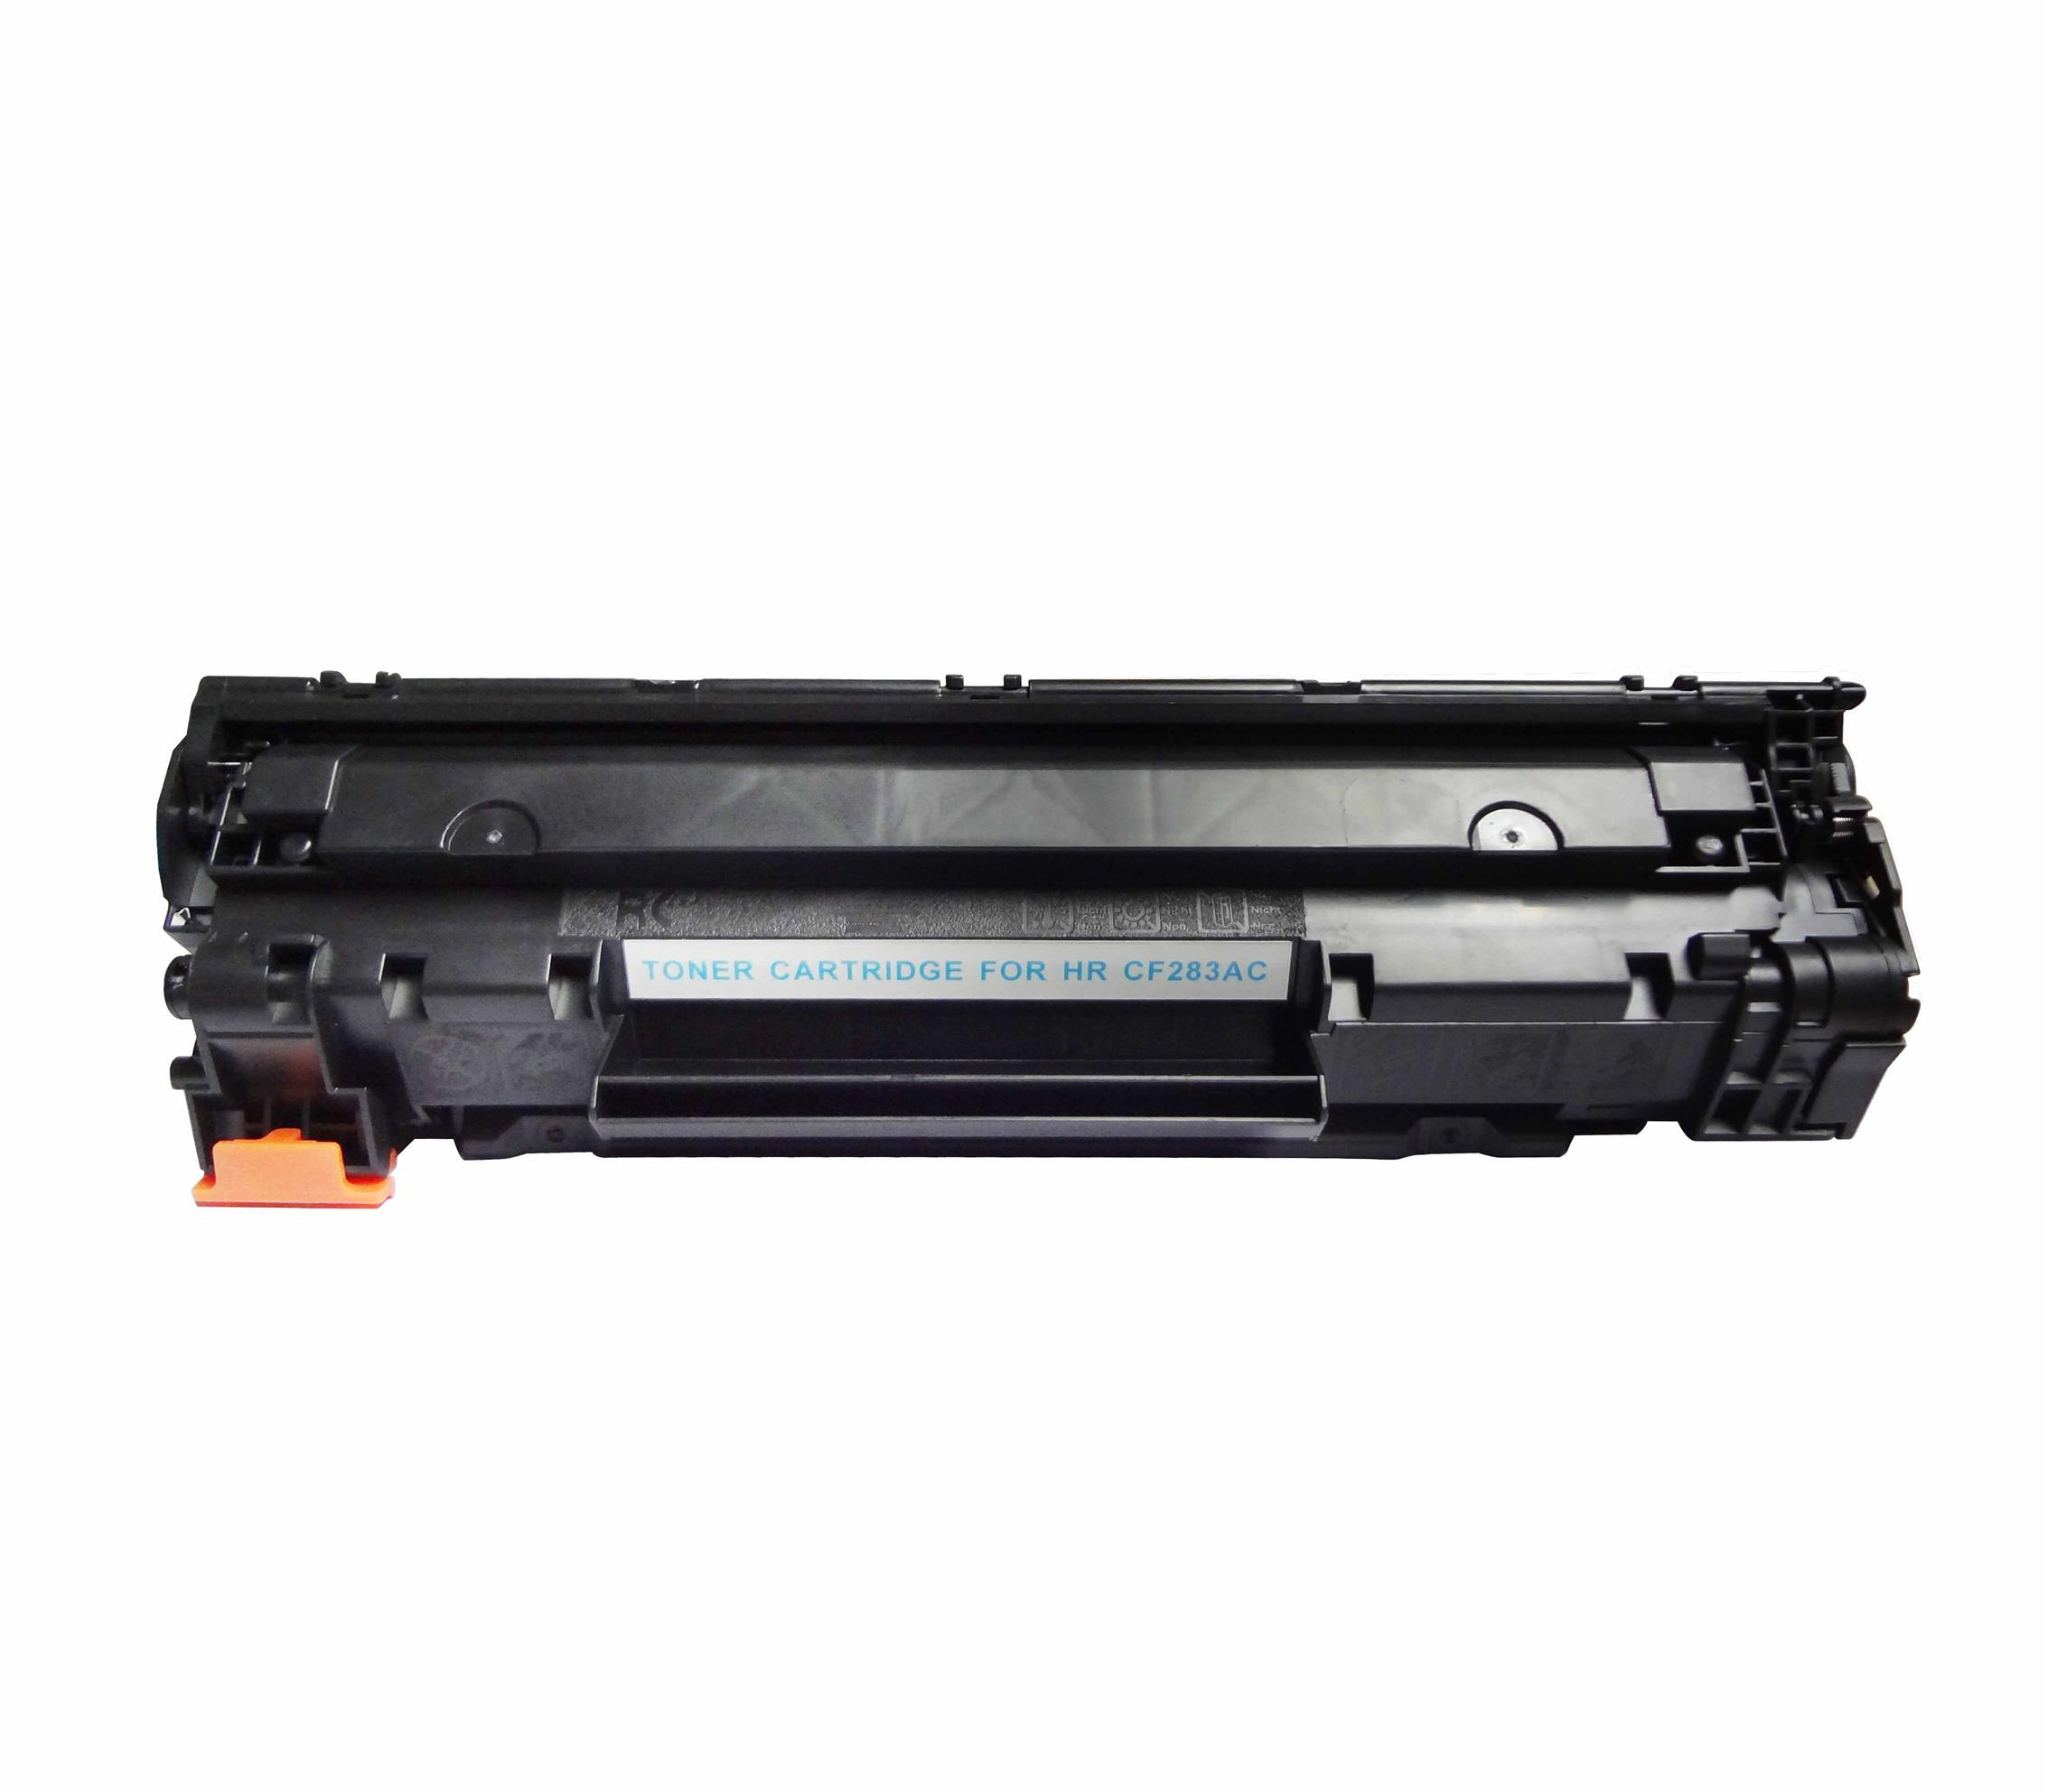 HP CF283A 83A 283A MFP M125 M225d M127 Compatible Toner Cartridge